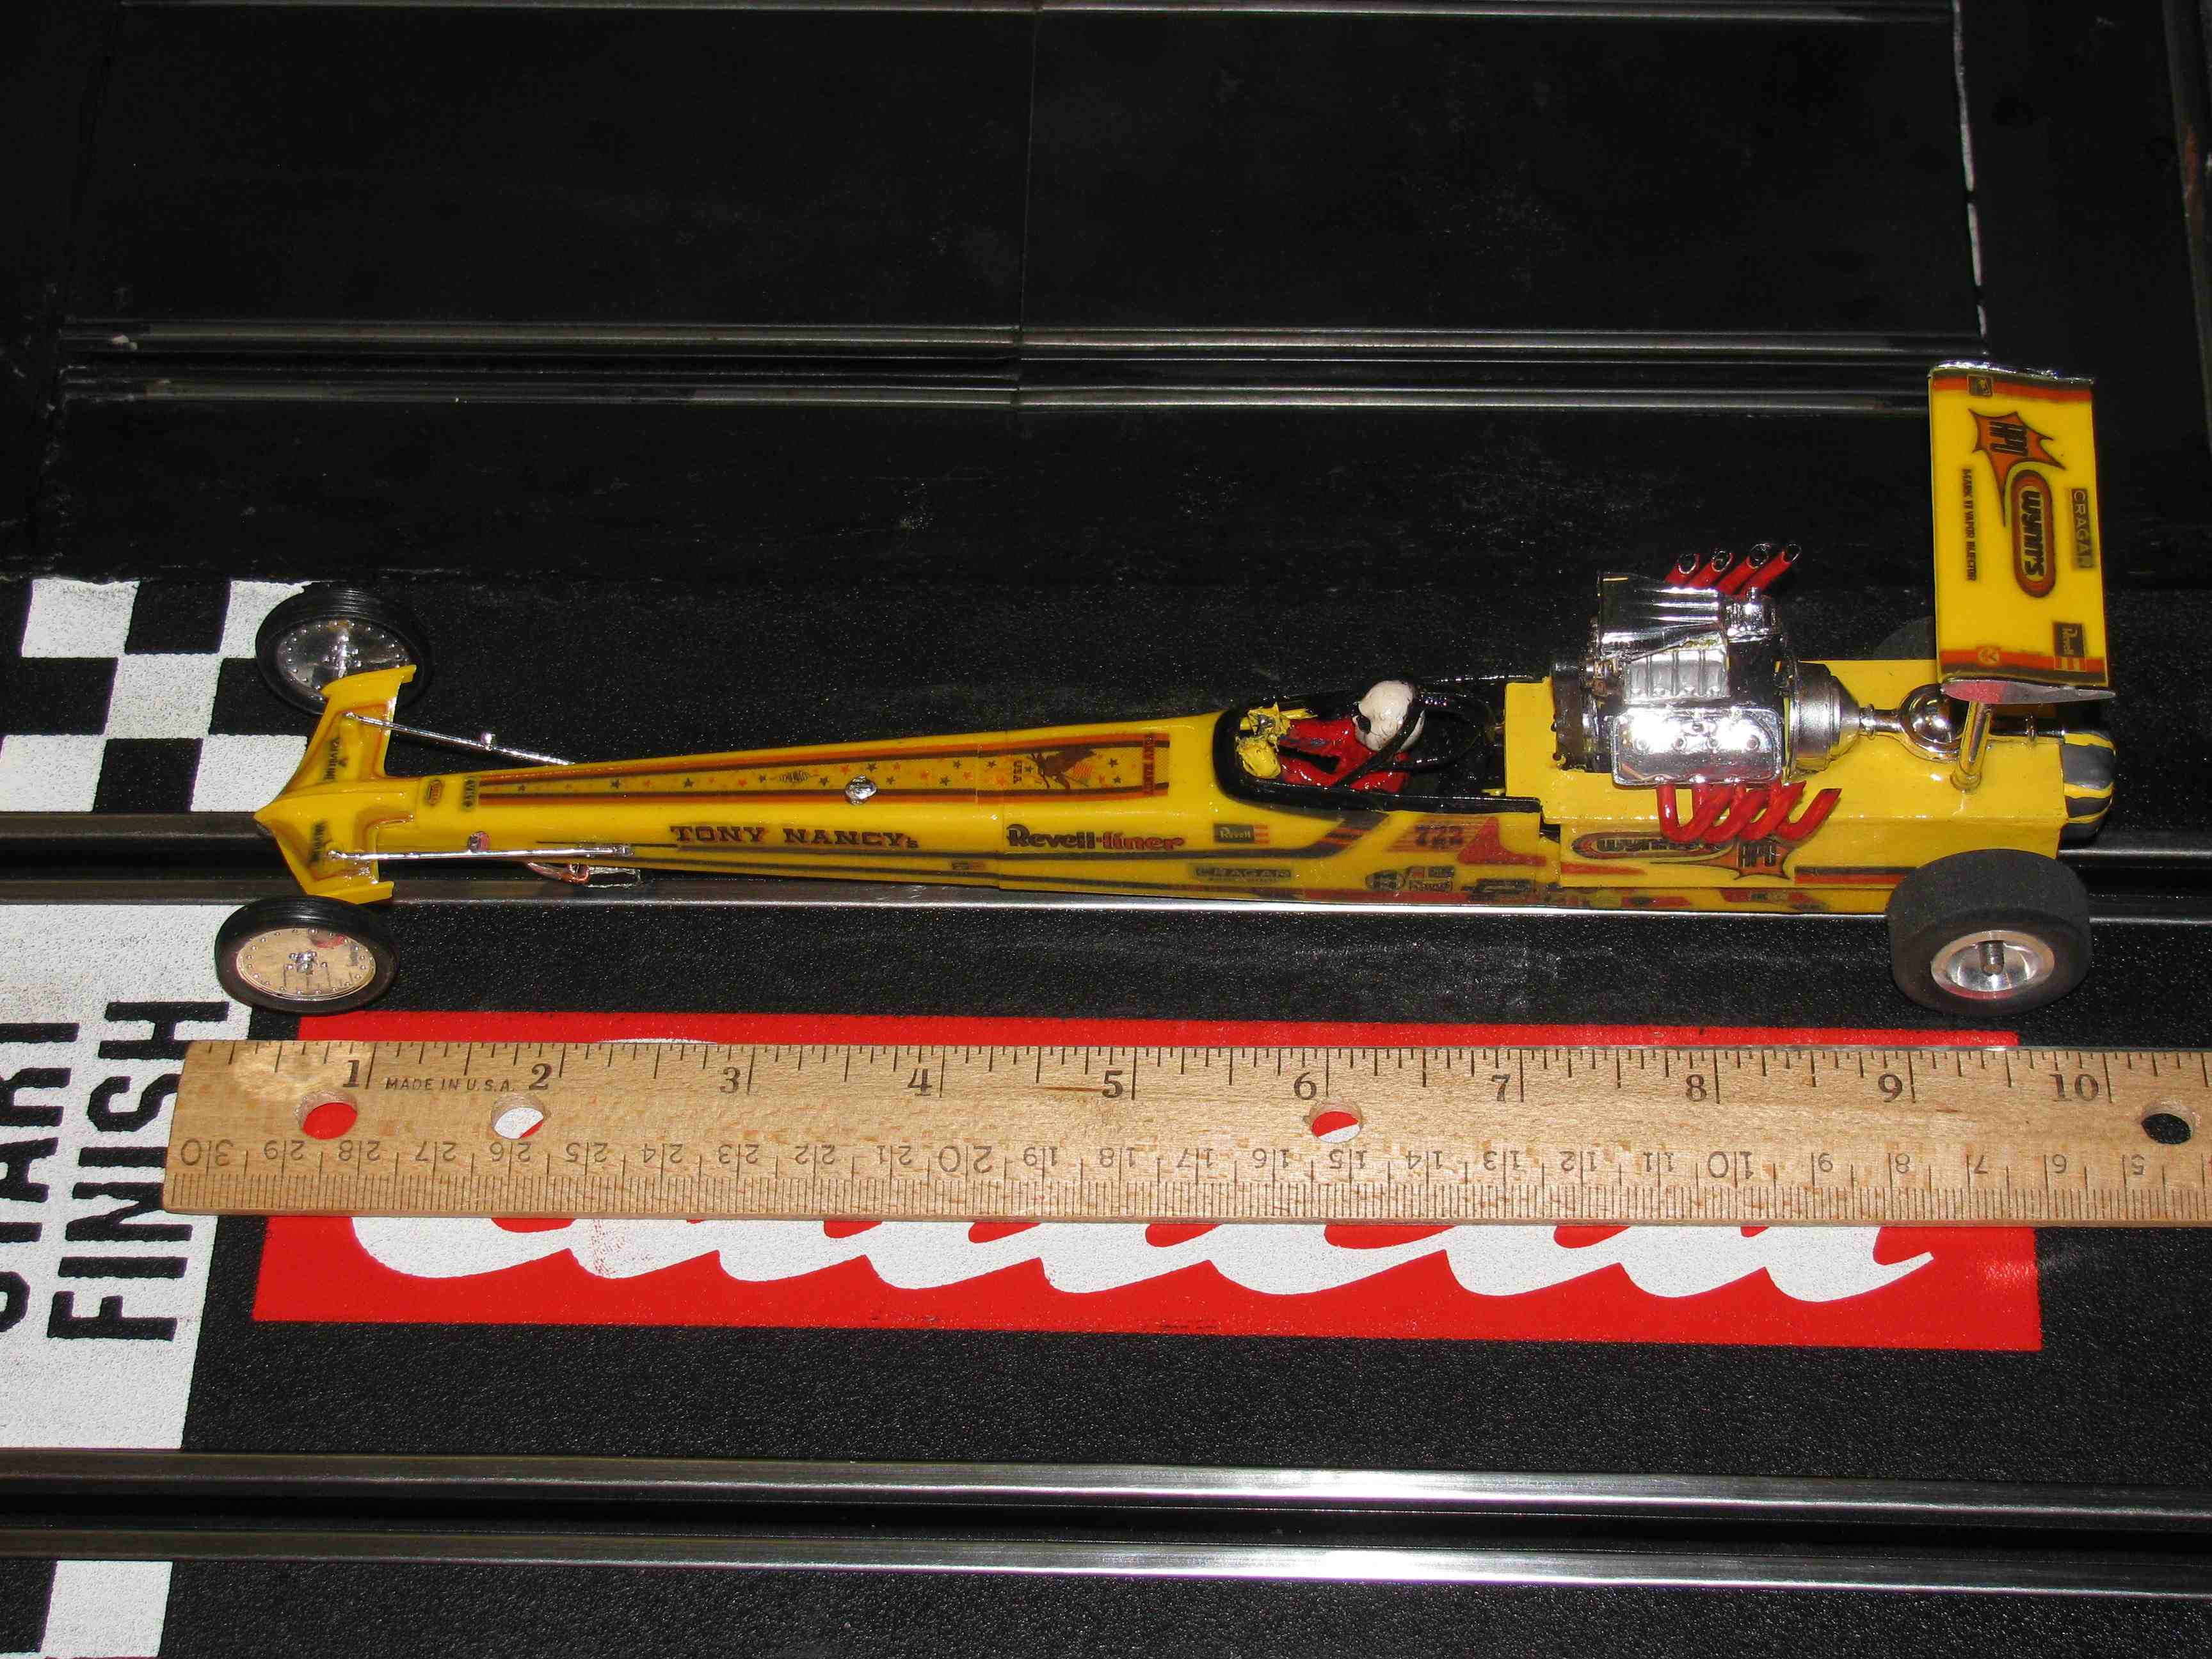 *** SOLD *** Revell-Liner Tony Nanacy 22JR Yellow Dragster – 1/24 Scale Slot Car